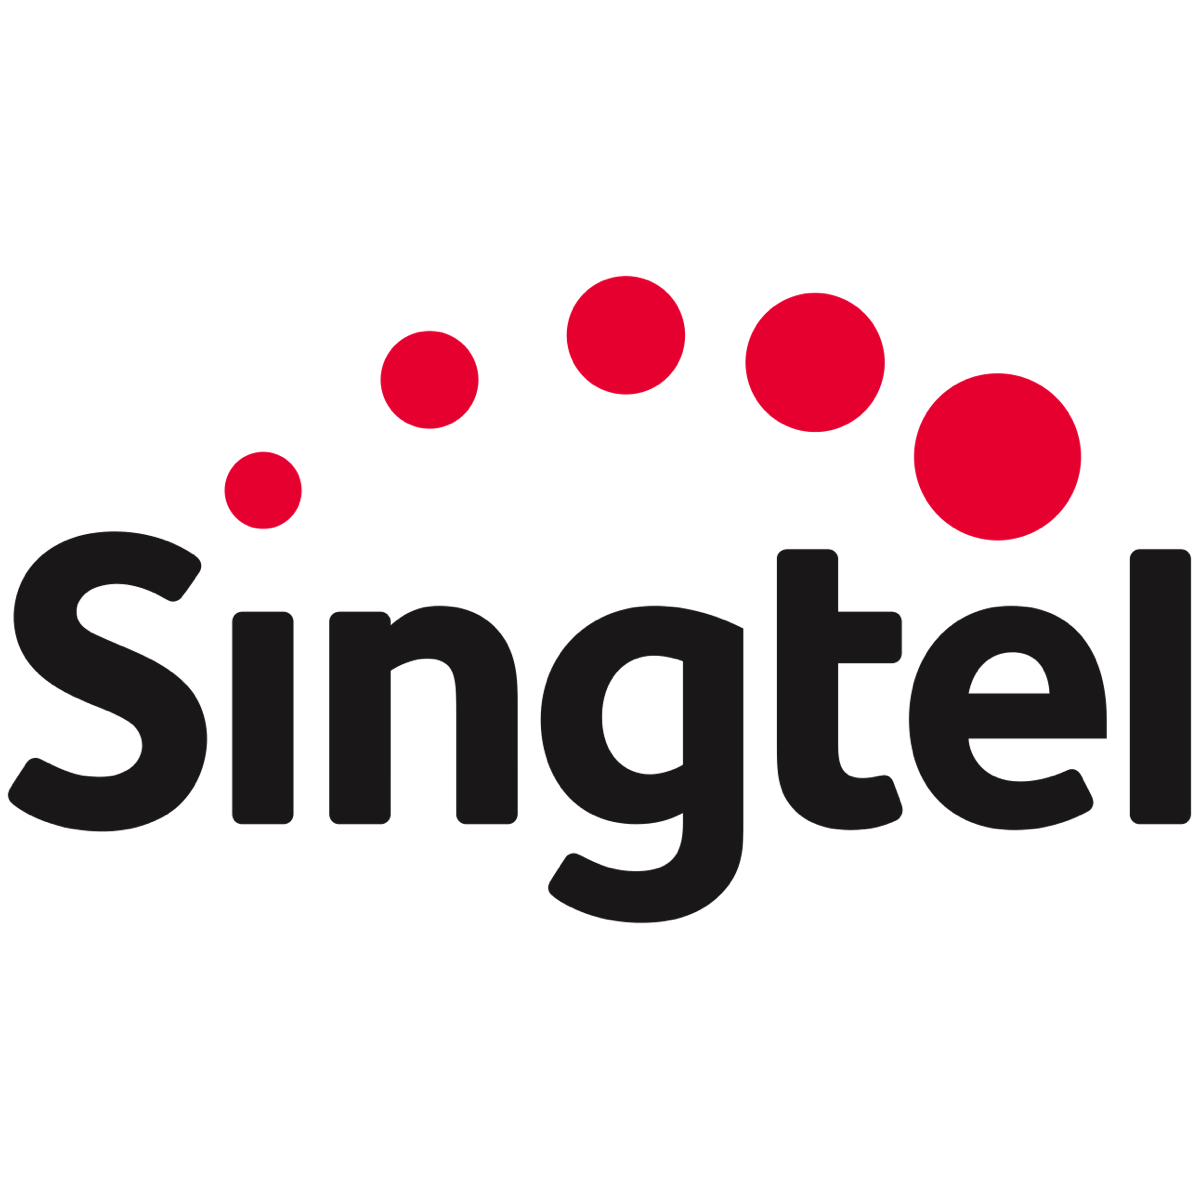 Singtel - OCBC Investment 2017-09-11: Beneficiary Of The New Digital Economy